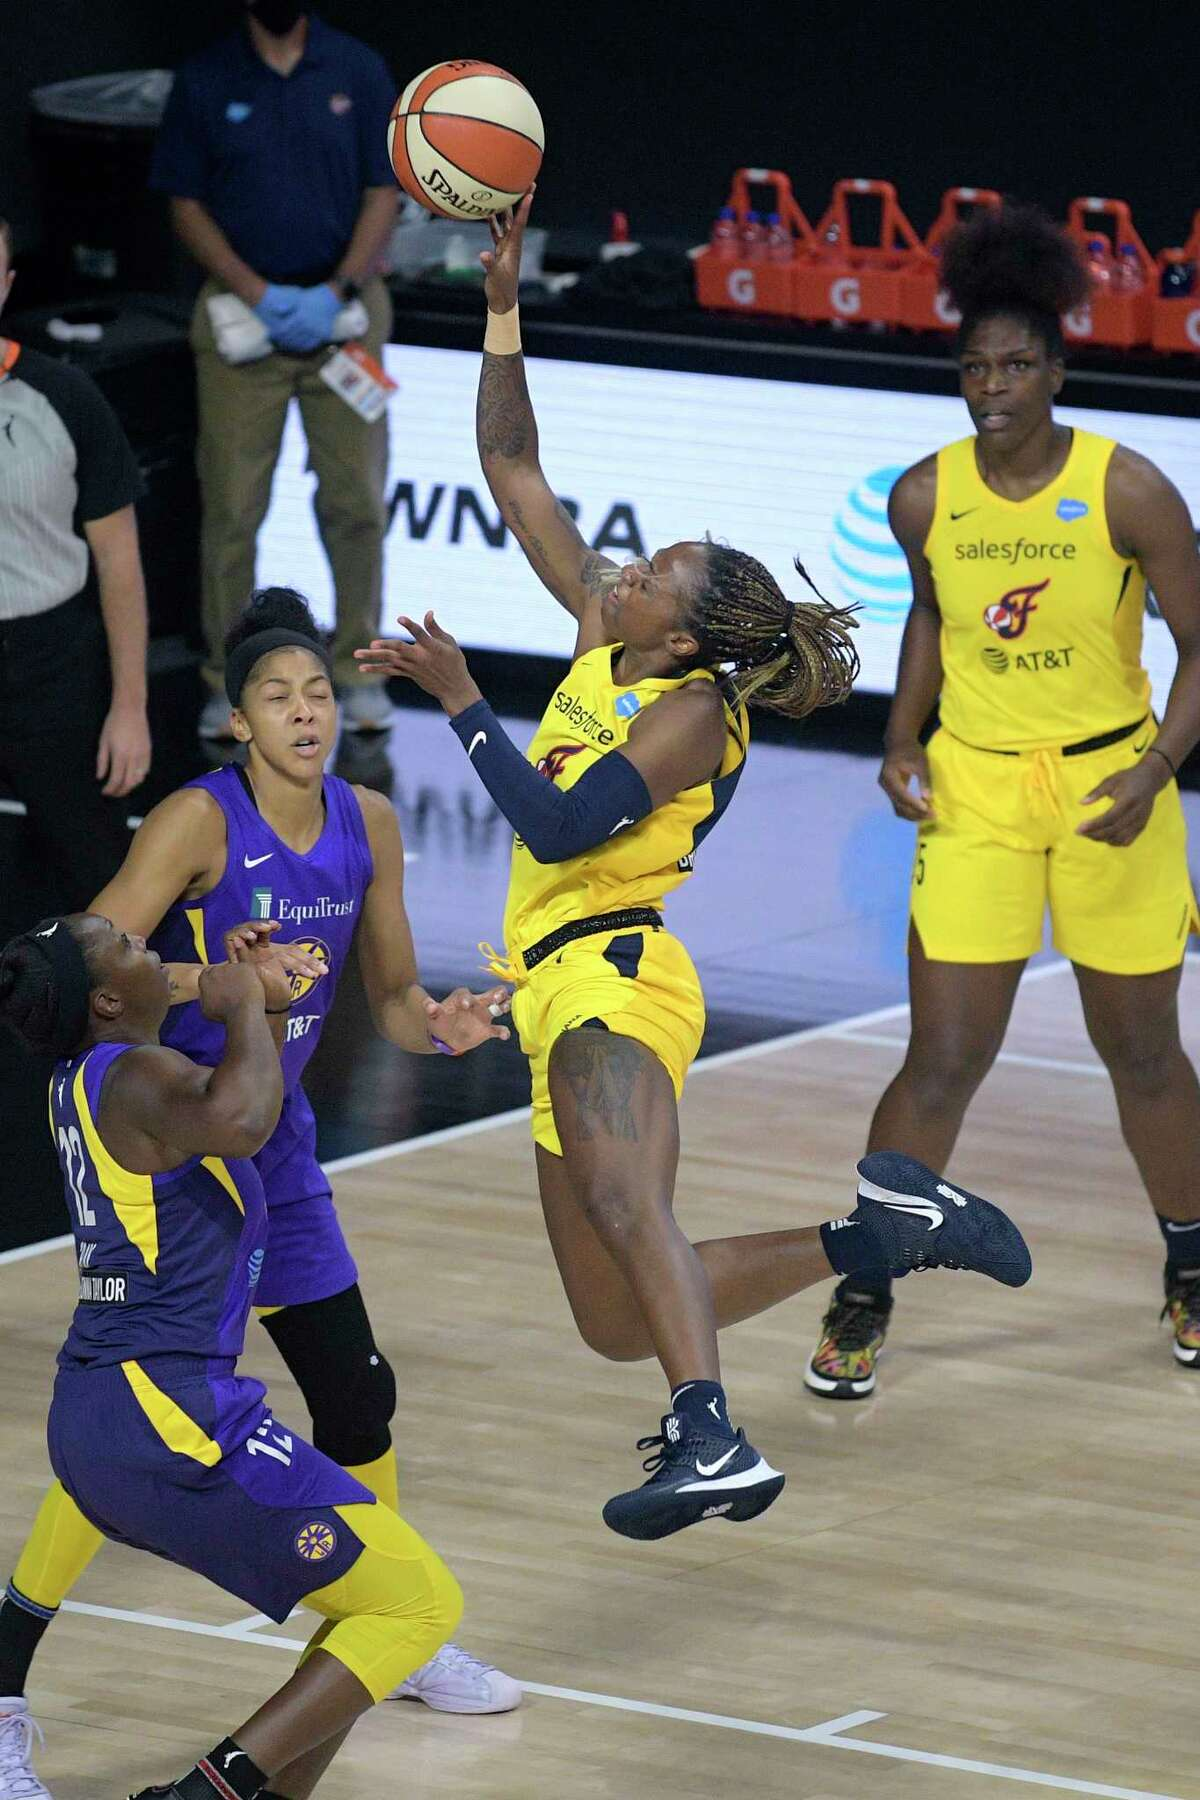 Indiana Fever guard Tiffany Mitchell goes up for a shot in front of Los Angeles Sparks forward Candace Parker and guard Chelsea Gray (12) as Fever center center Teaira McCowan, right, watches during the first half of a WNBA basketball game, Saturday, Aug. 15, 2020, in Bradenton, Fla. (AP Photo/Phelan M. Ebenhack)